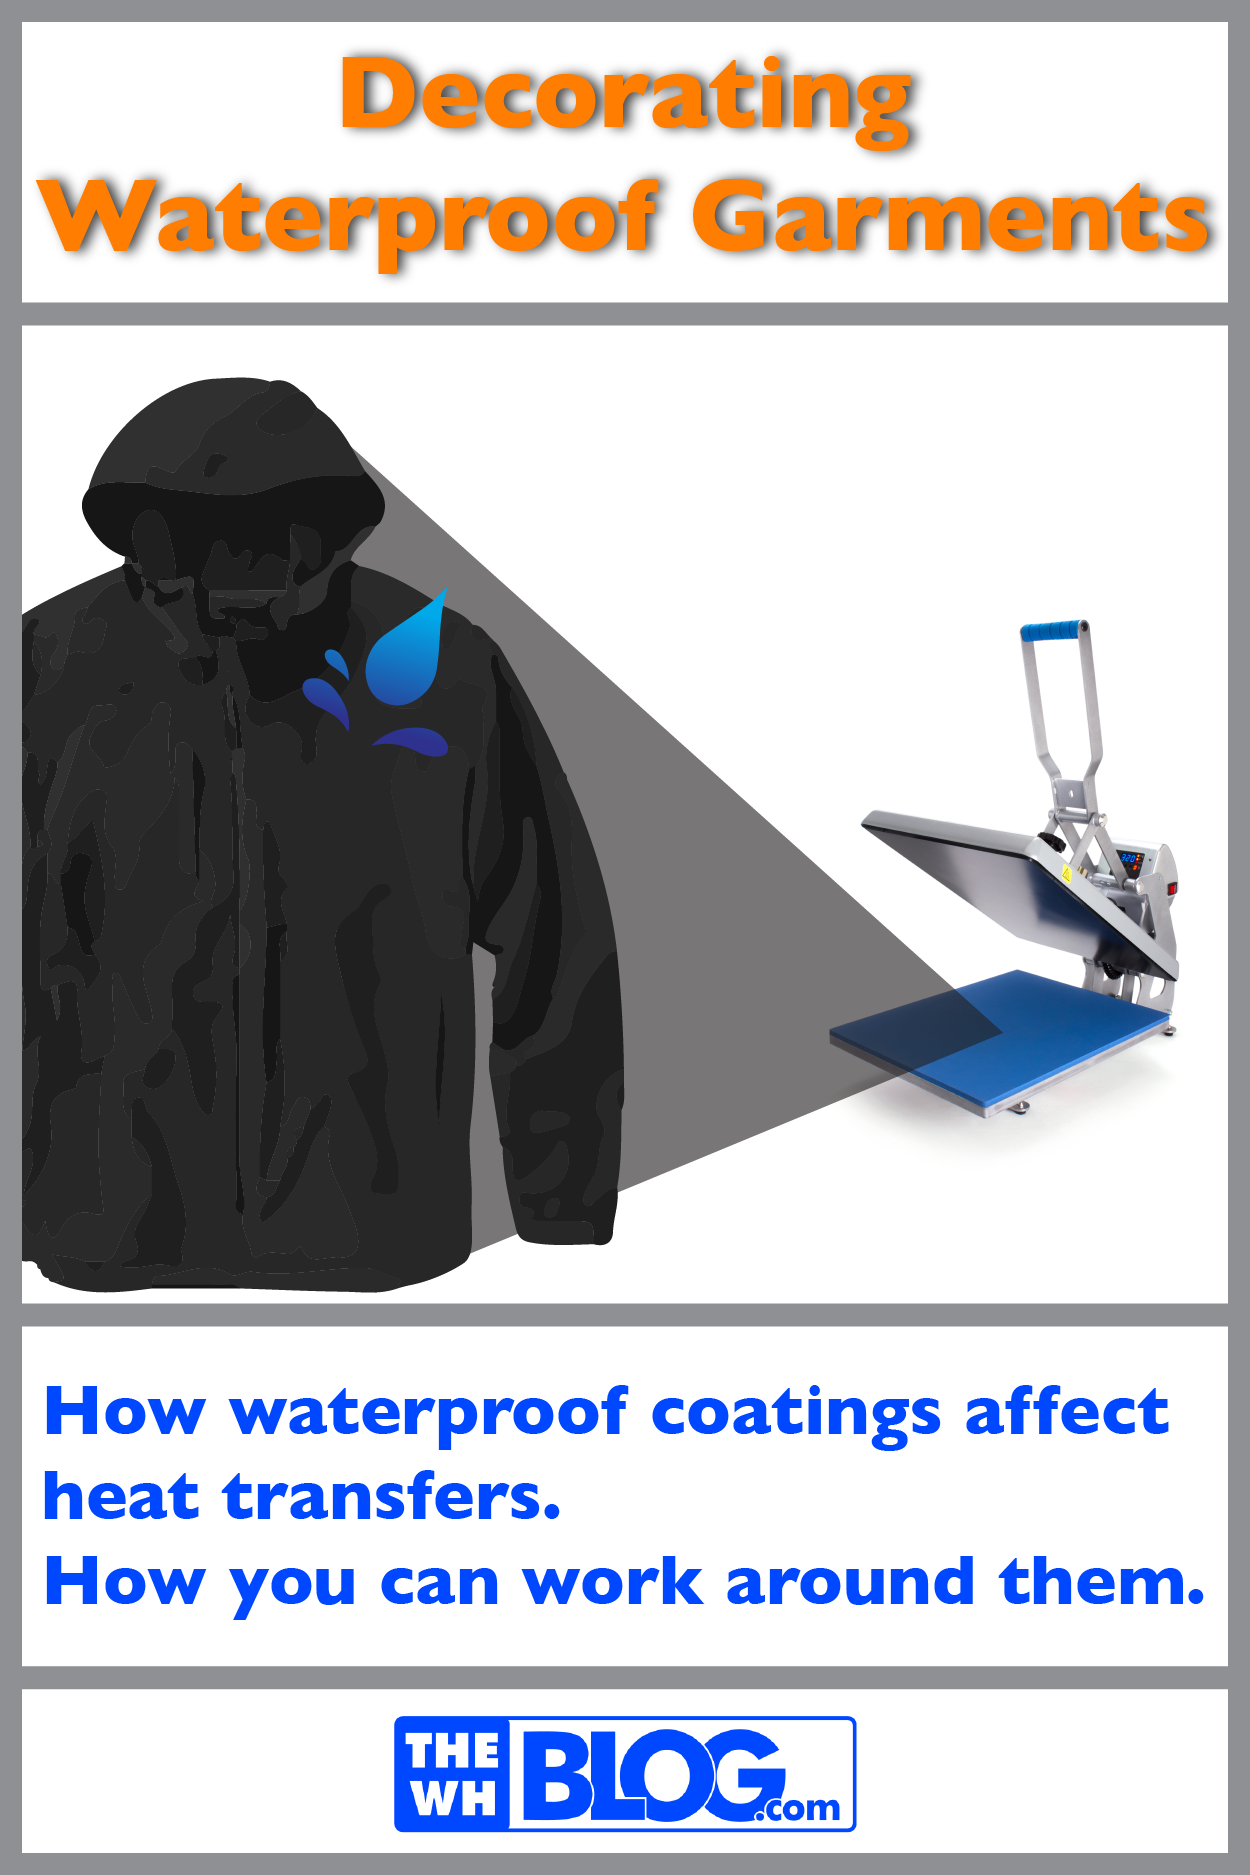 Blog Article Cover: Decorating waterproof garments